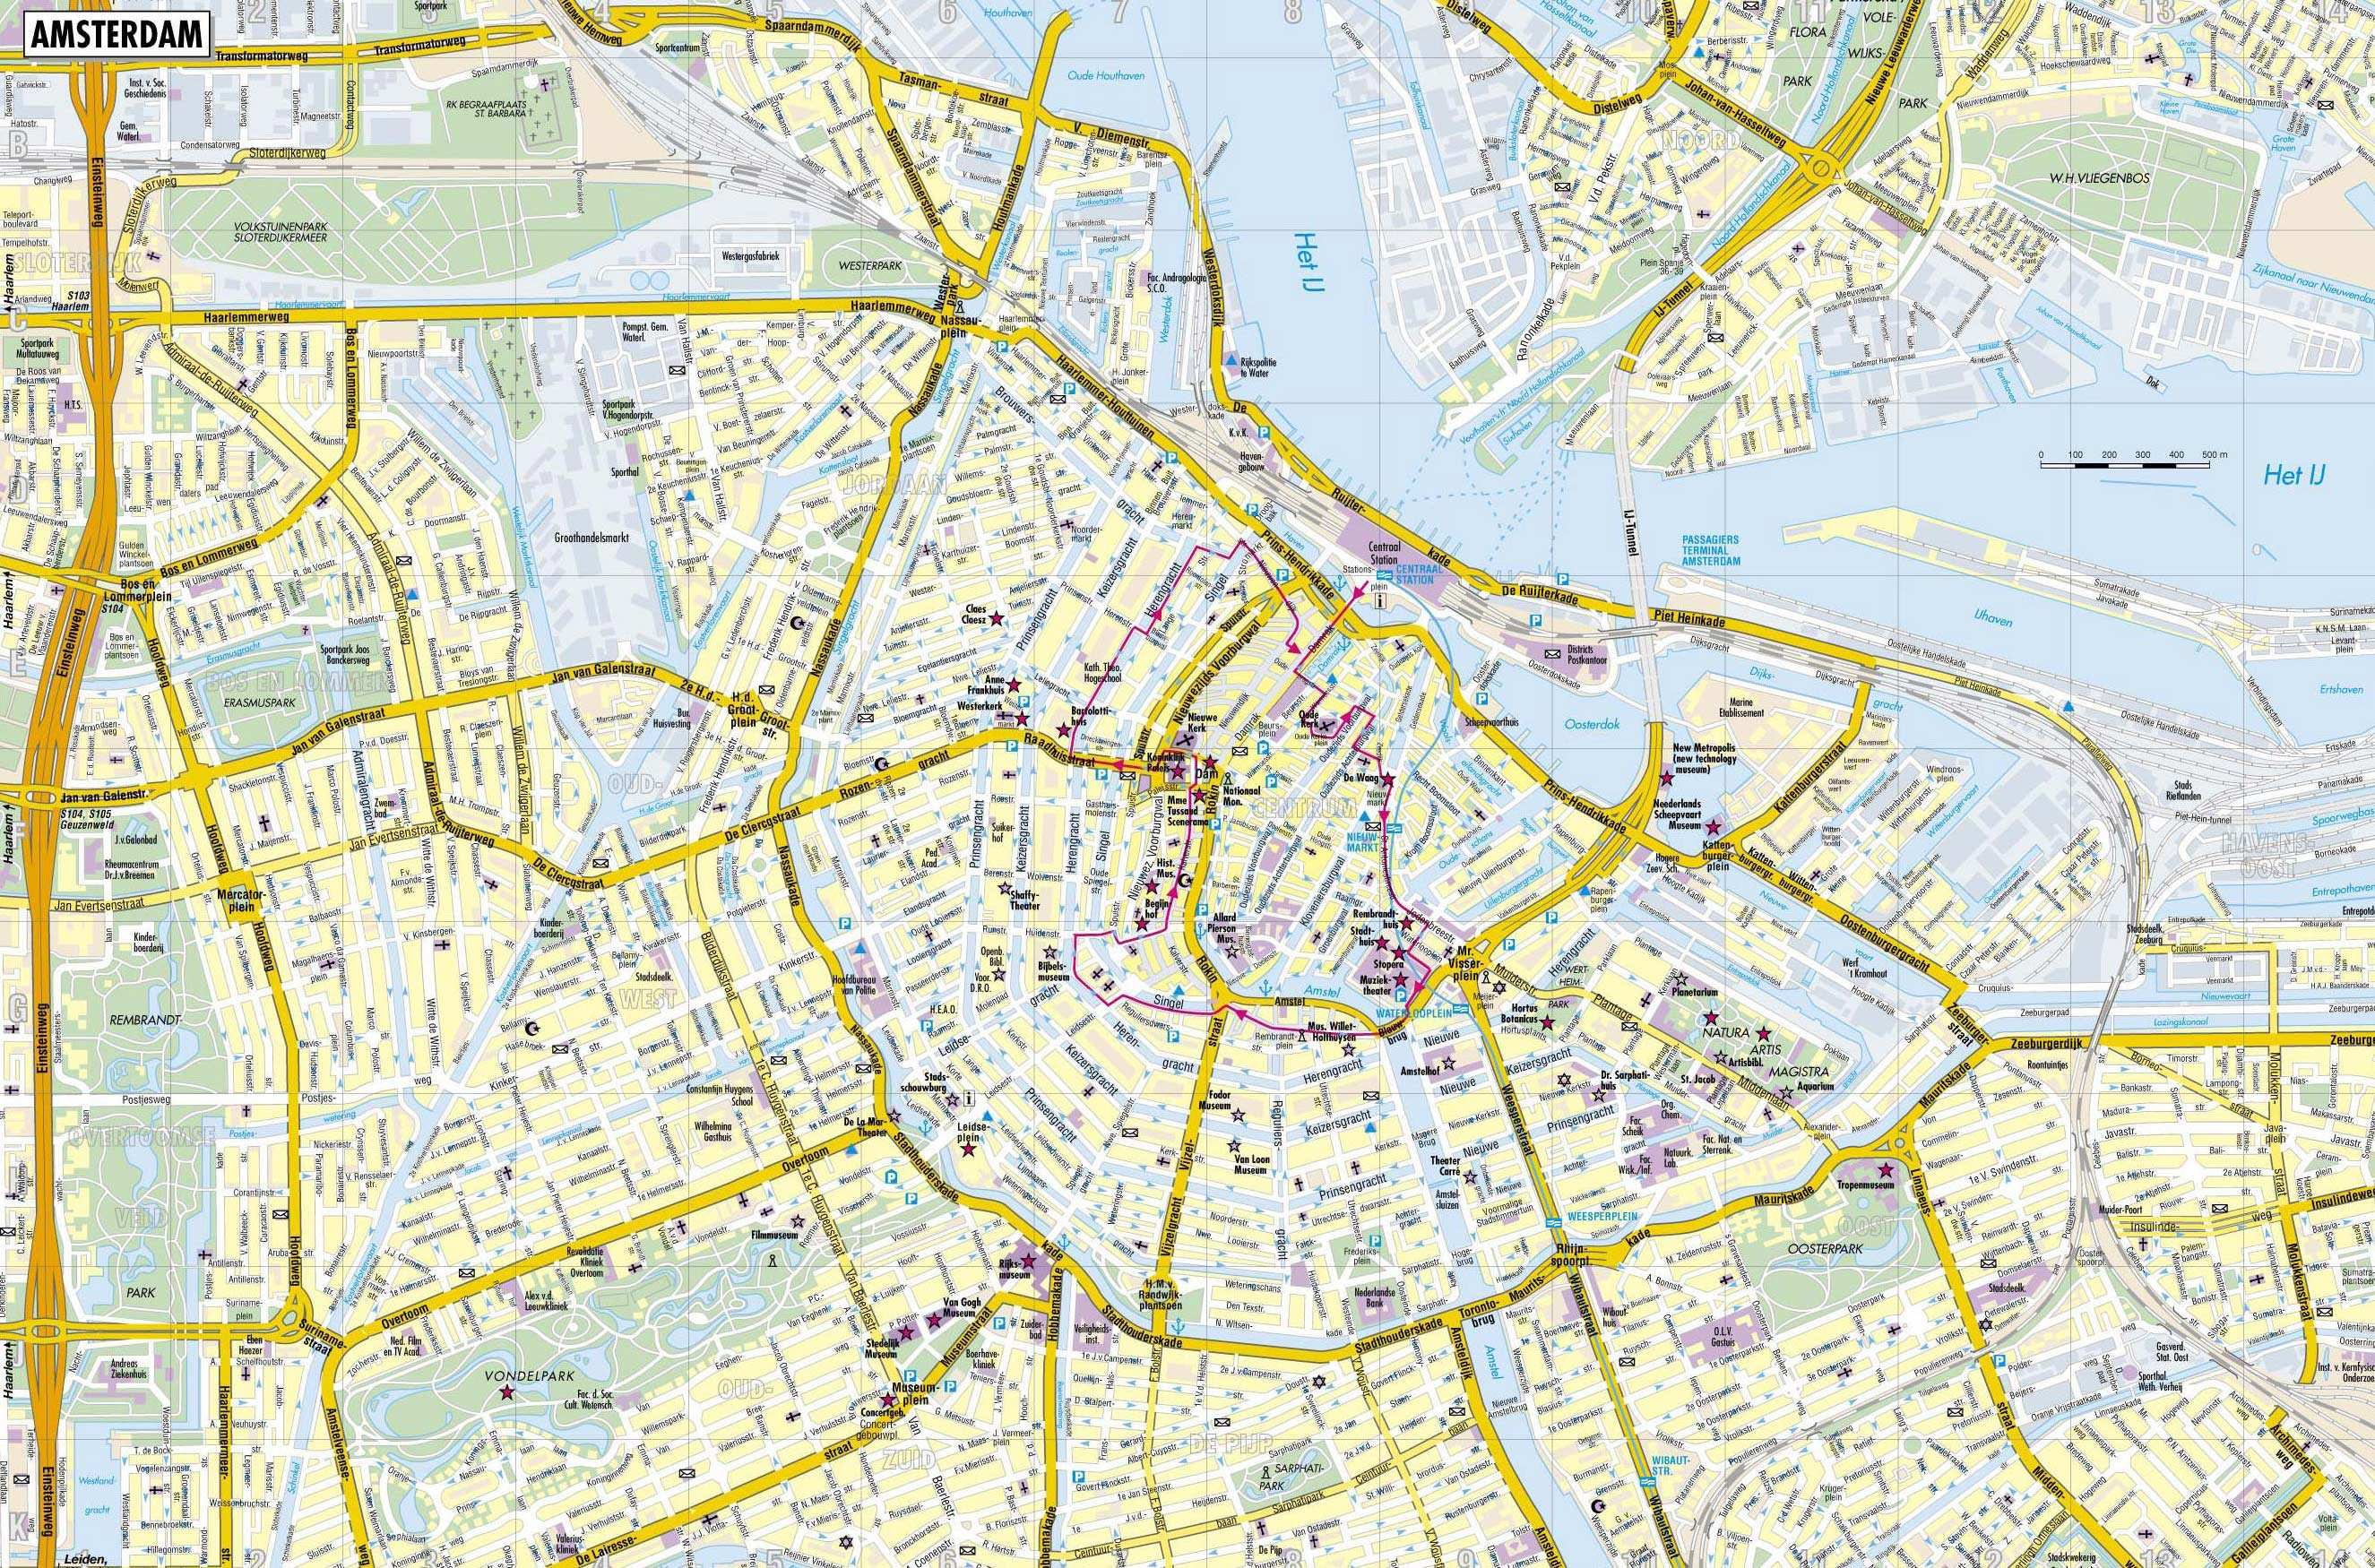 Venlo Stadtplan Large Amsterdam Maps For Free Download And Print | High